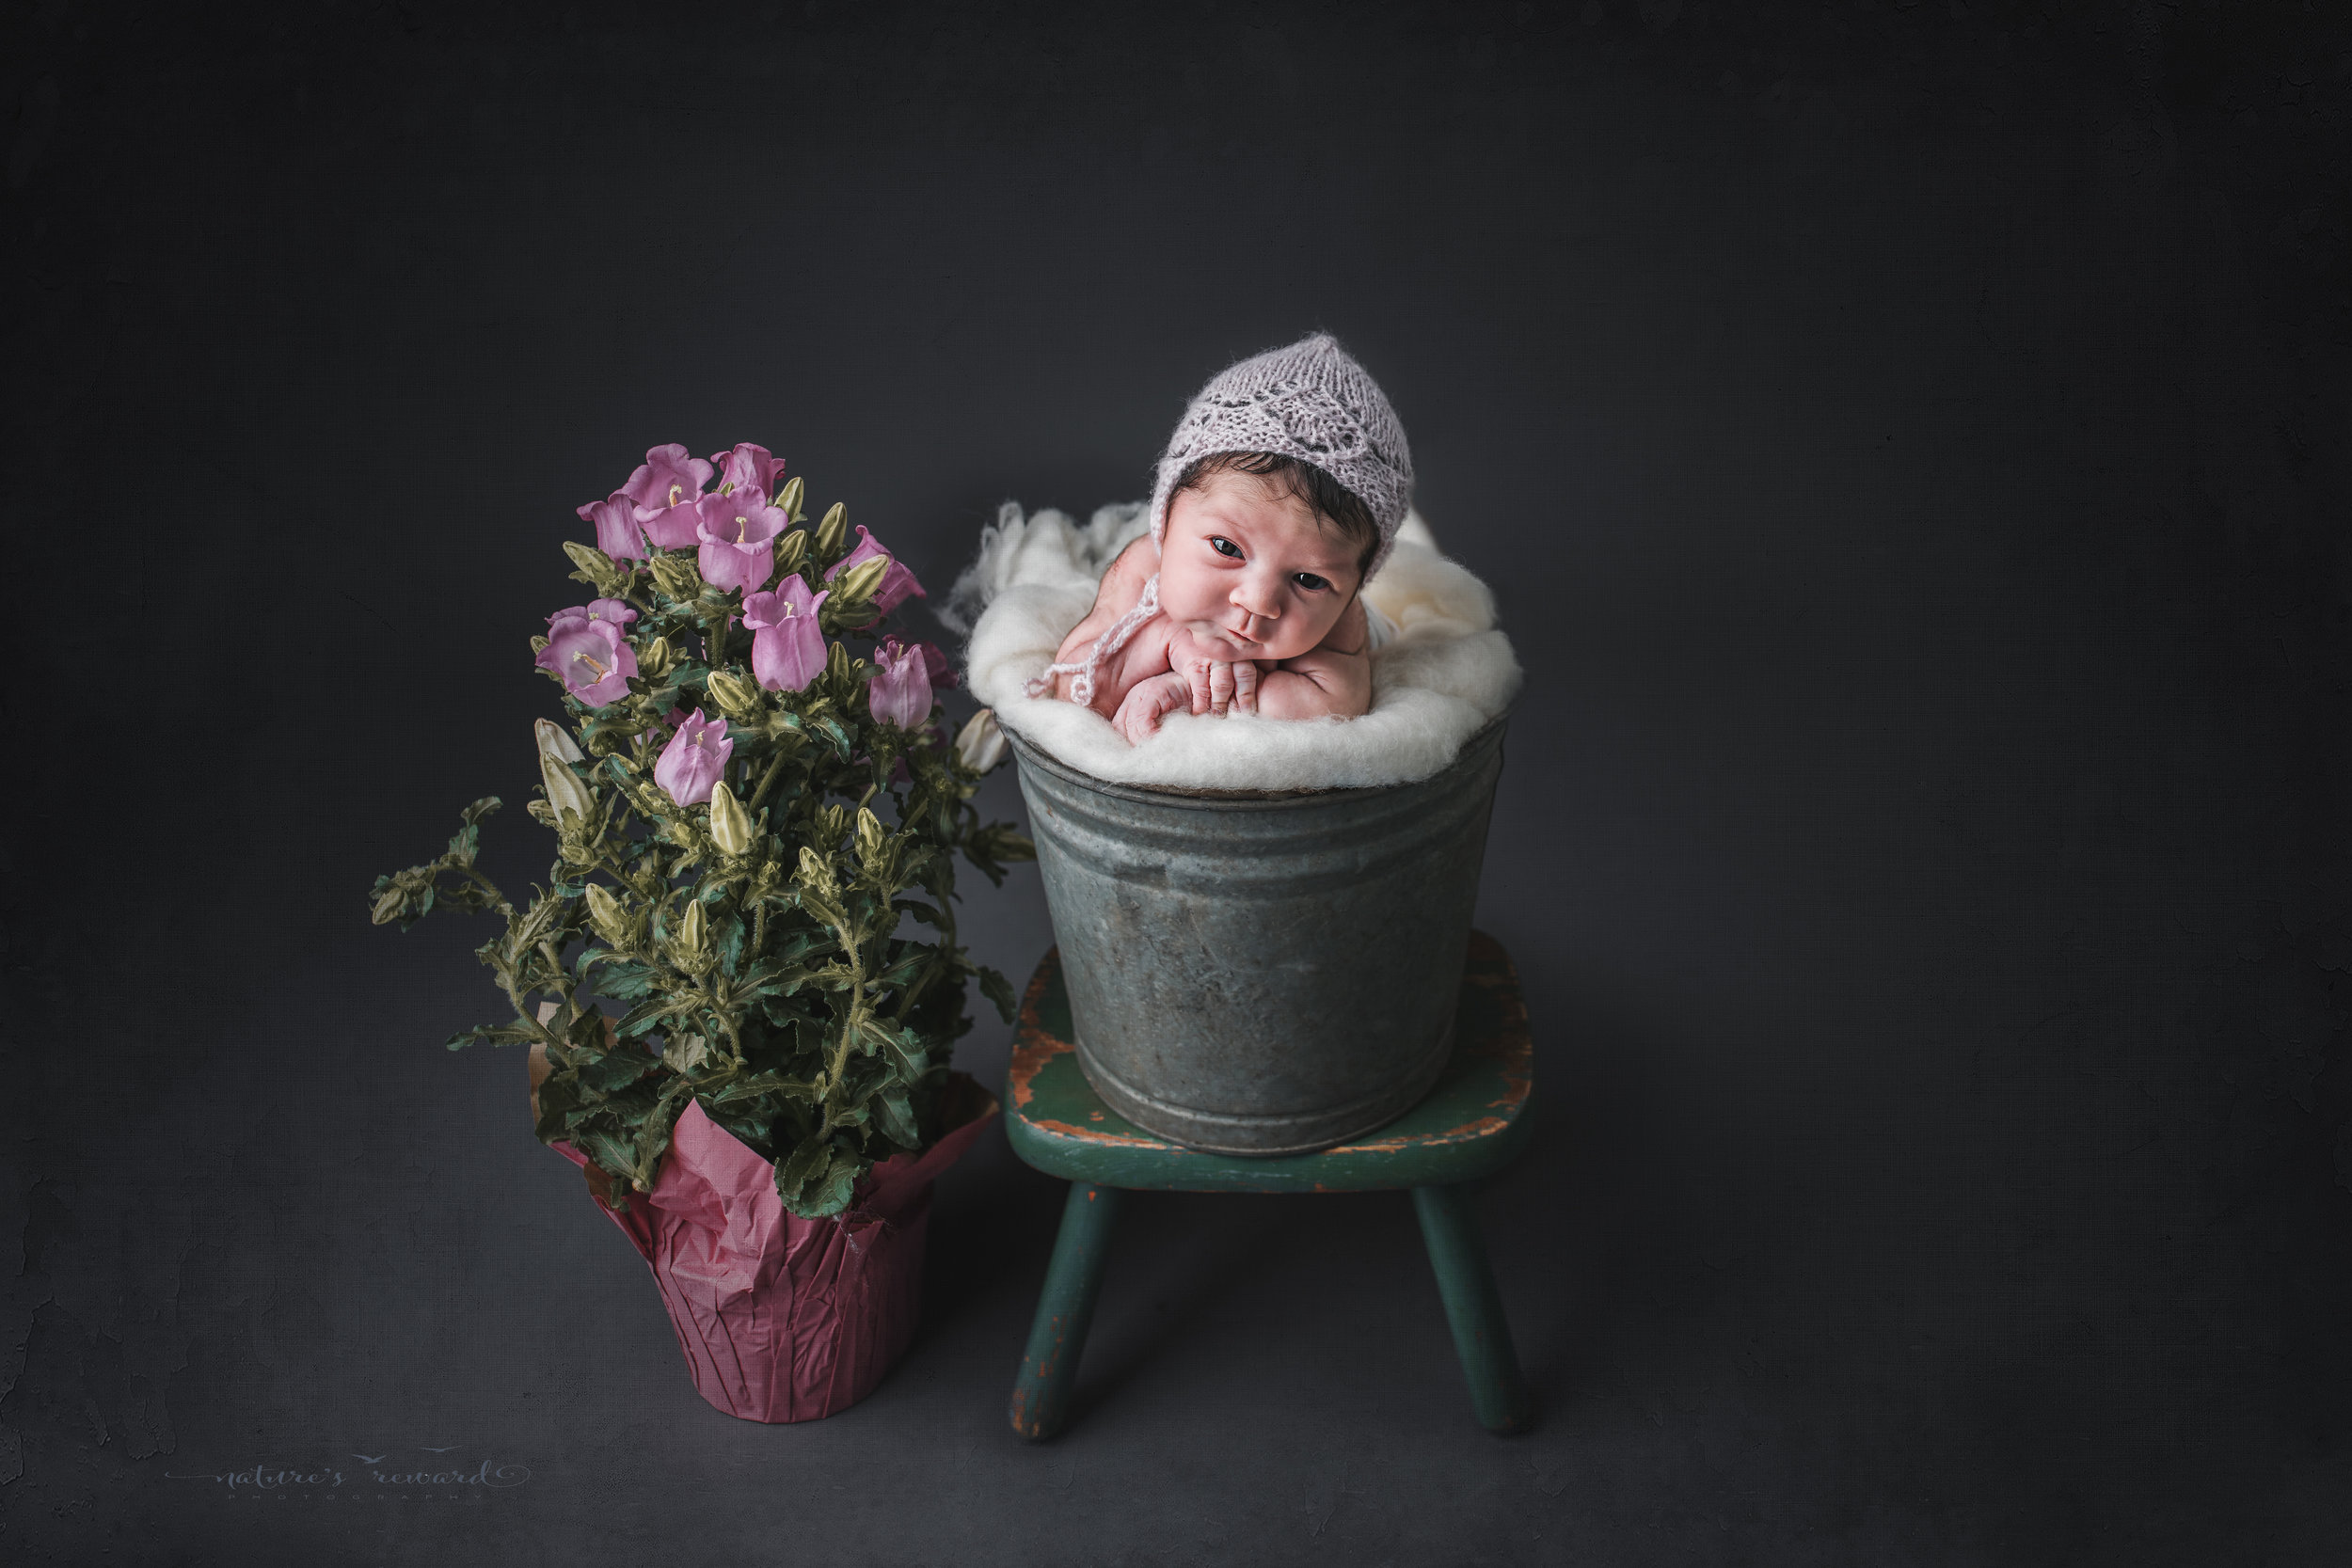 A newborn baby girl wearing a pink bonnet in a bucket next to potted flowers, a portrait by Nature's Reward Photography.